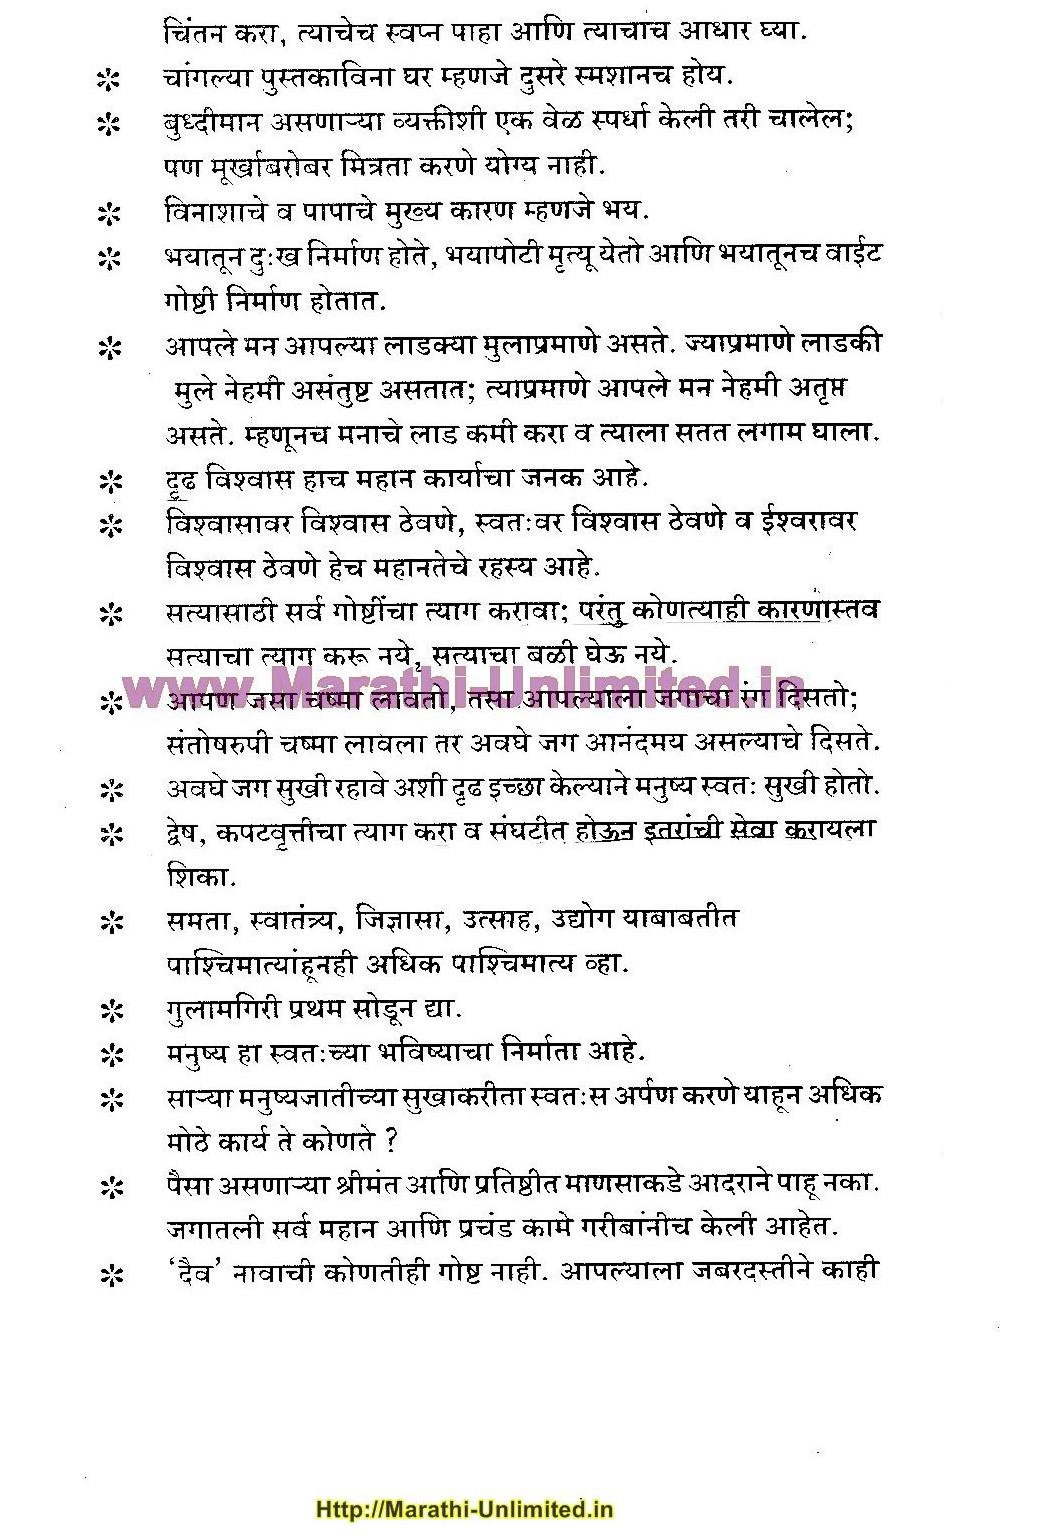 essay on my grandfather in marathi How to write an essay for college essay on my grandfather in marathi cheap essay writing service uk national service training program essay.